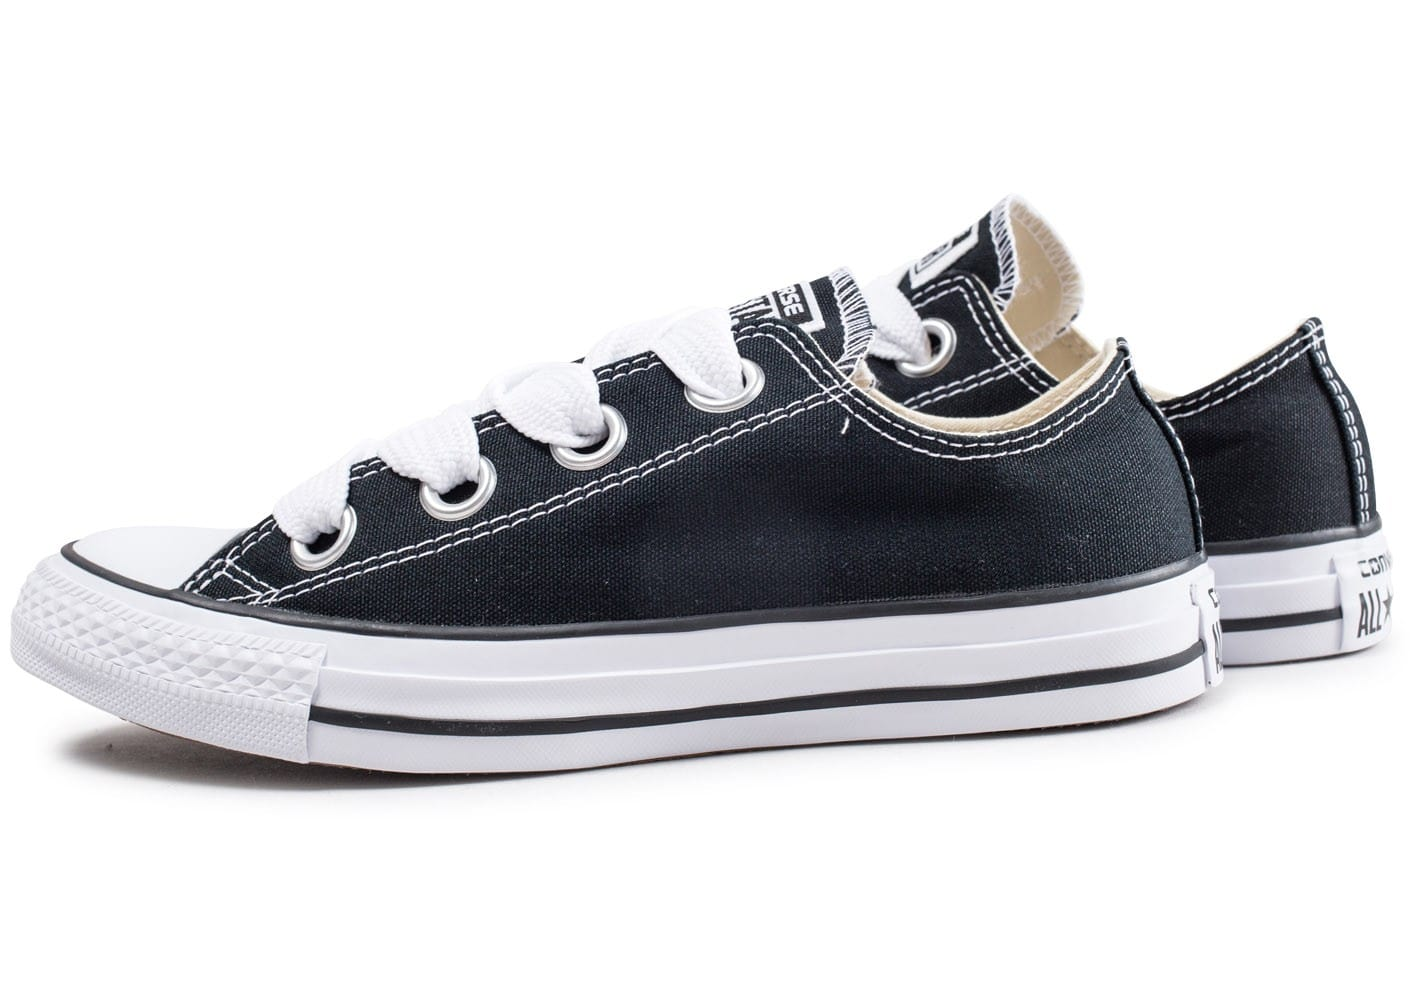 Converse Chuck Taylor All Star Big Eyelets noire ...